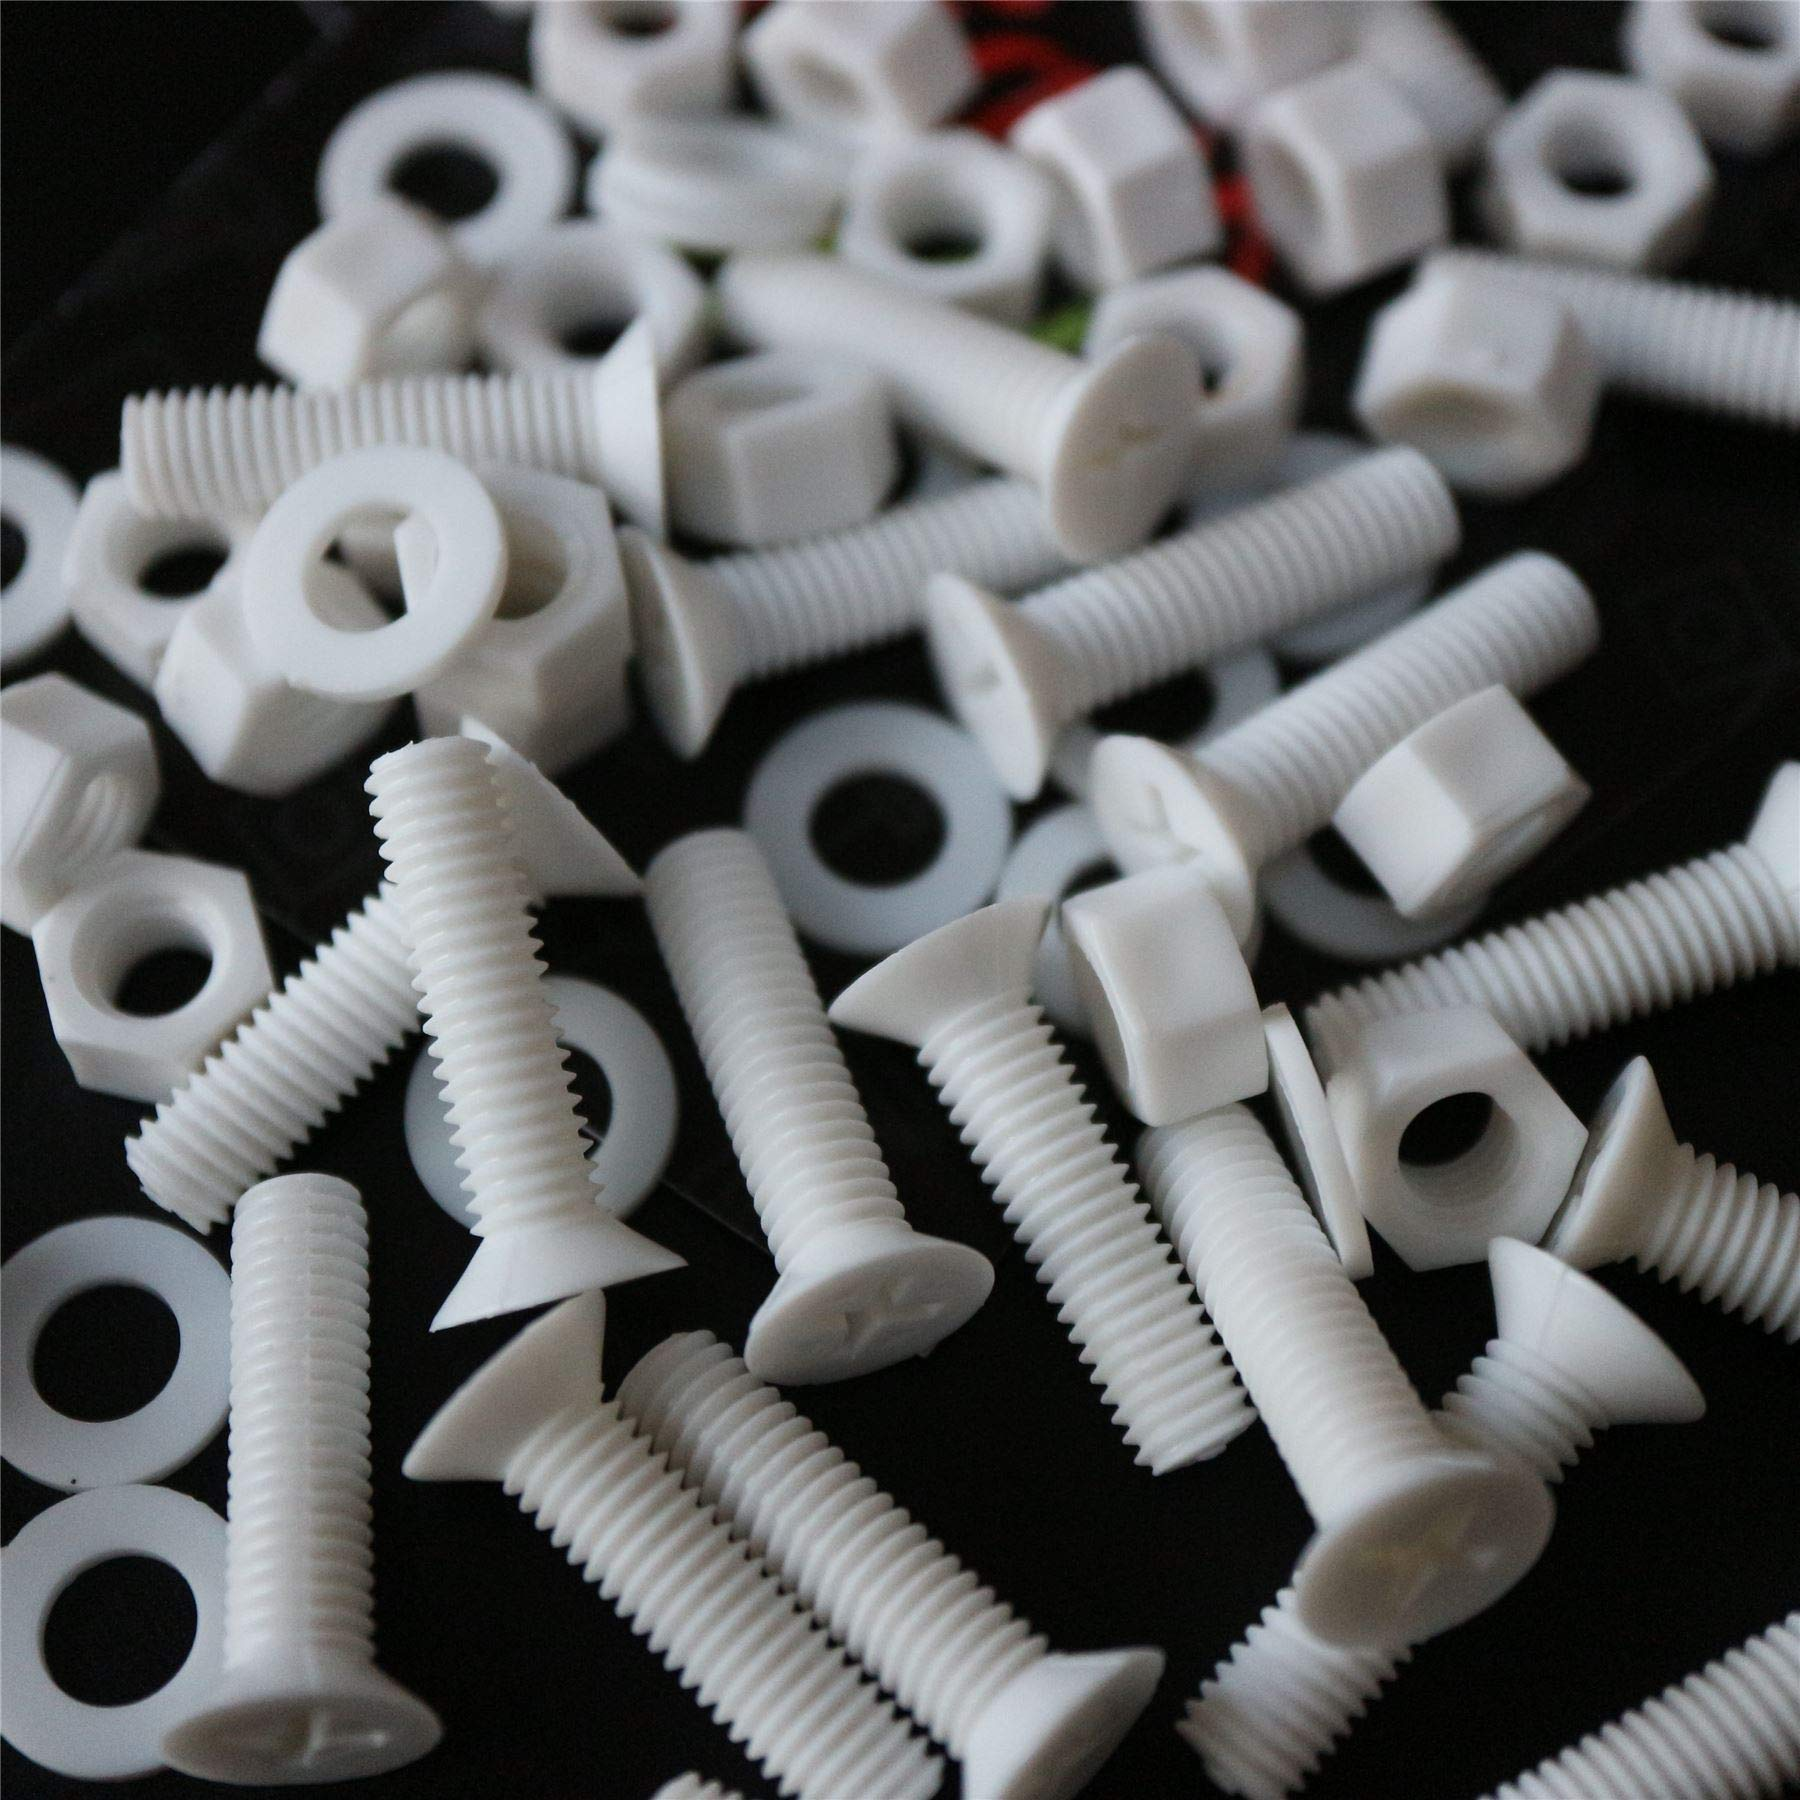 20 x White Countersunk Screws Polypropylene (PP) Plastic Nuts and Bolts, Washers, M5 x 20mm, Acrylic, Water Resistant, Anti-Corrosion, Chemical Resistant, Electrical Insulator, Strong. 13/64 x 25/32''